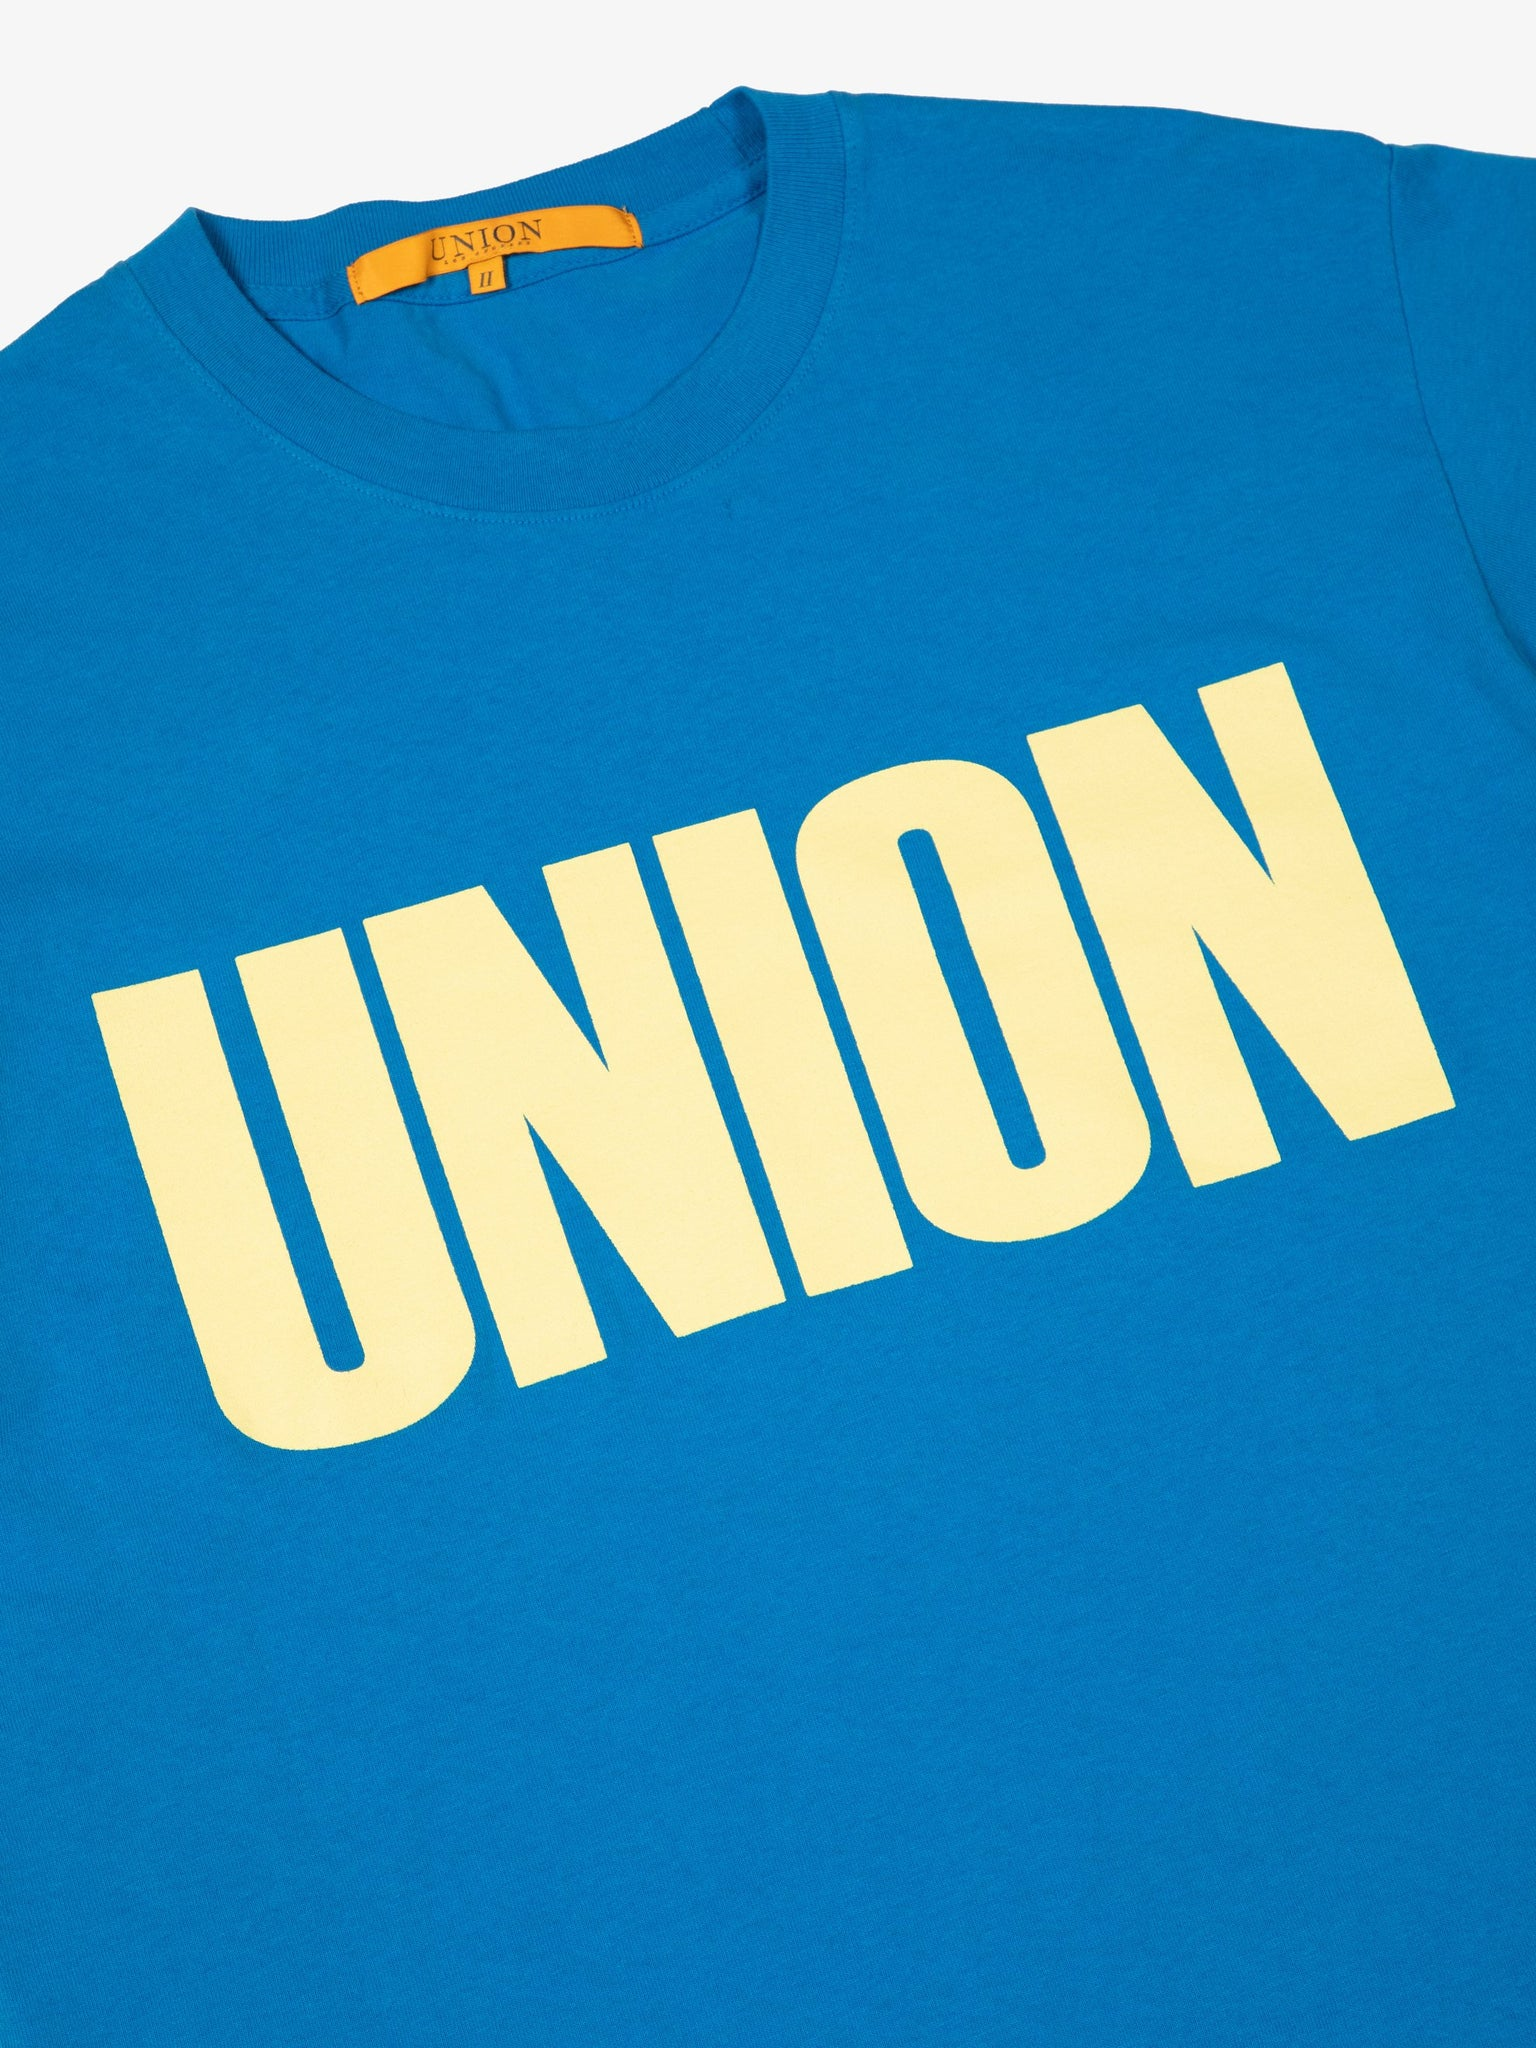 union-logo-t-shirt-4